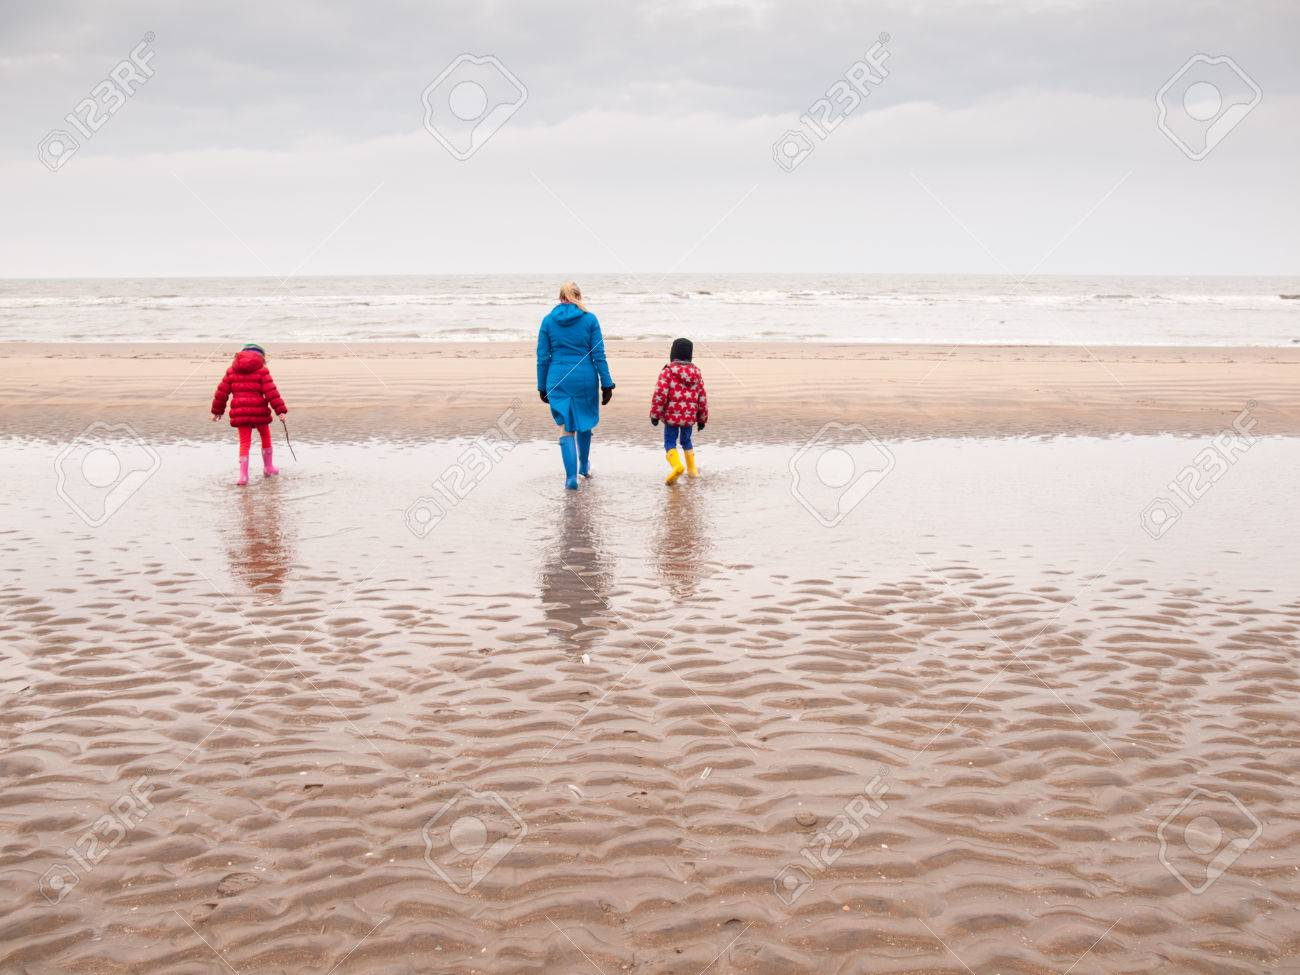 a2bdb748c1 Stock Photo - woman with small boy and girl in winter clothing and rubber  boots on a winter beach looking out to sea